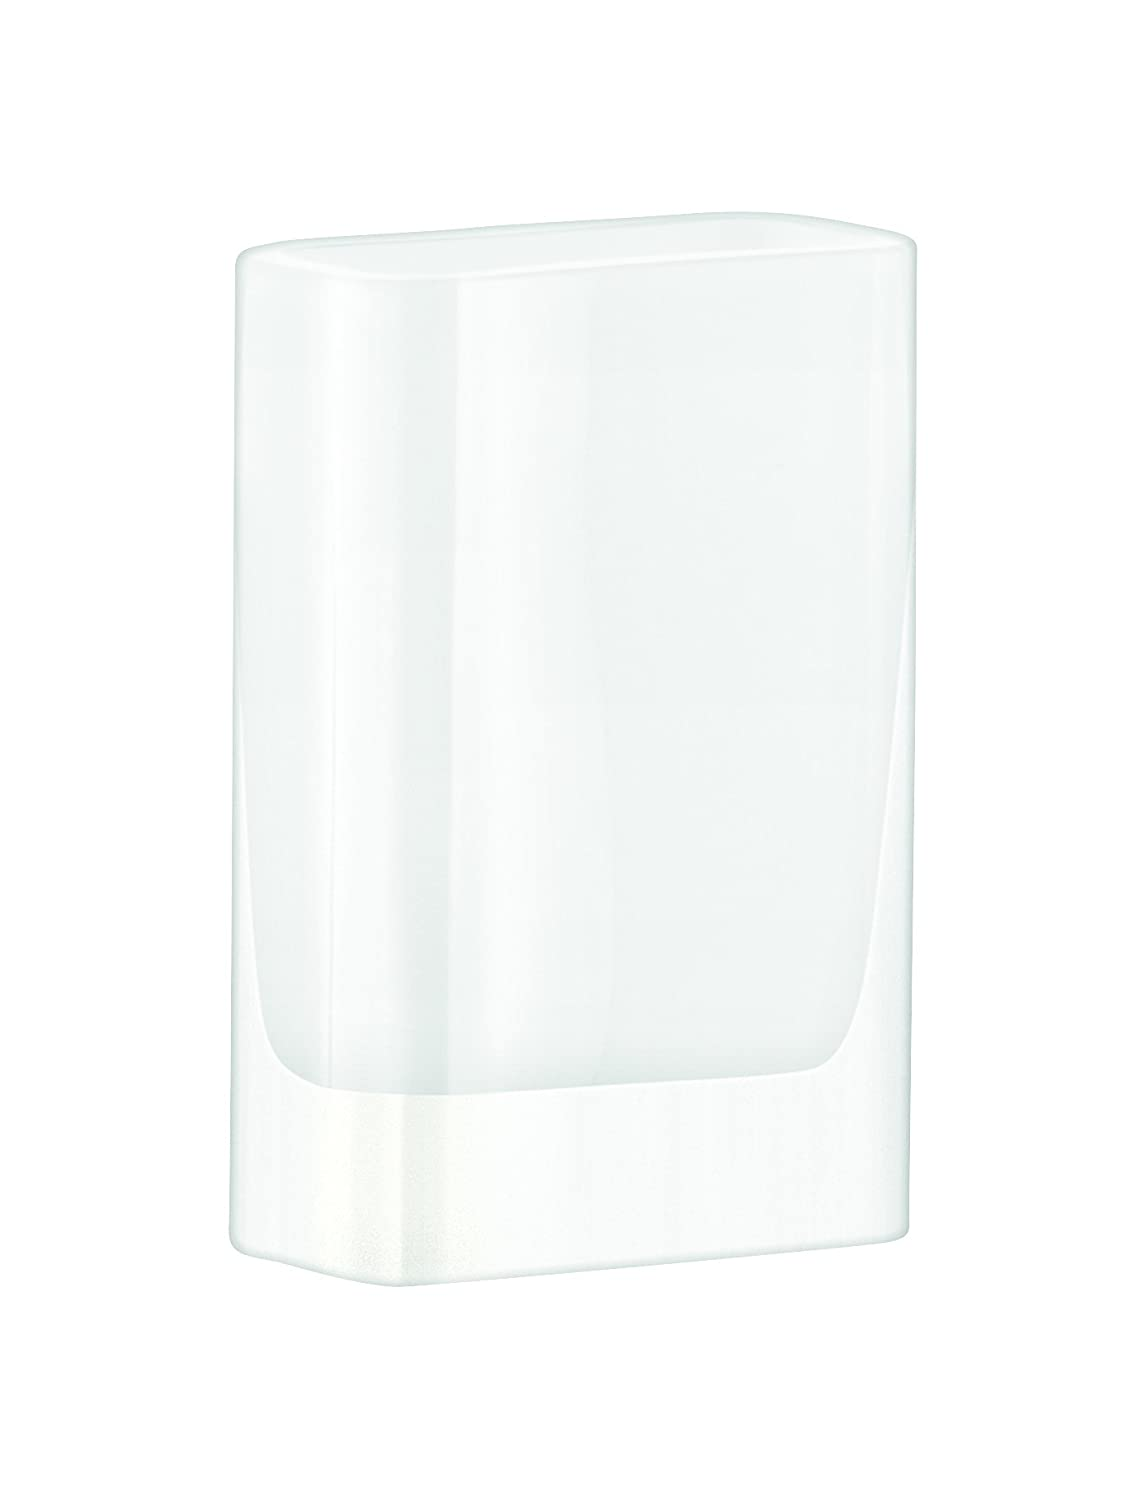 LSA International Modular H6 x W4 x D2in Sapphire Vases Colour G857-15-610